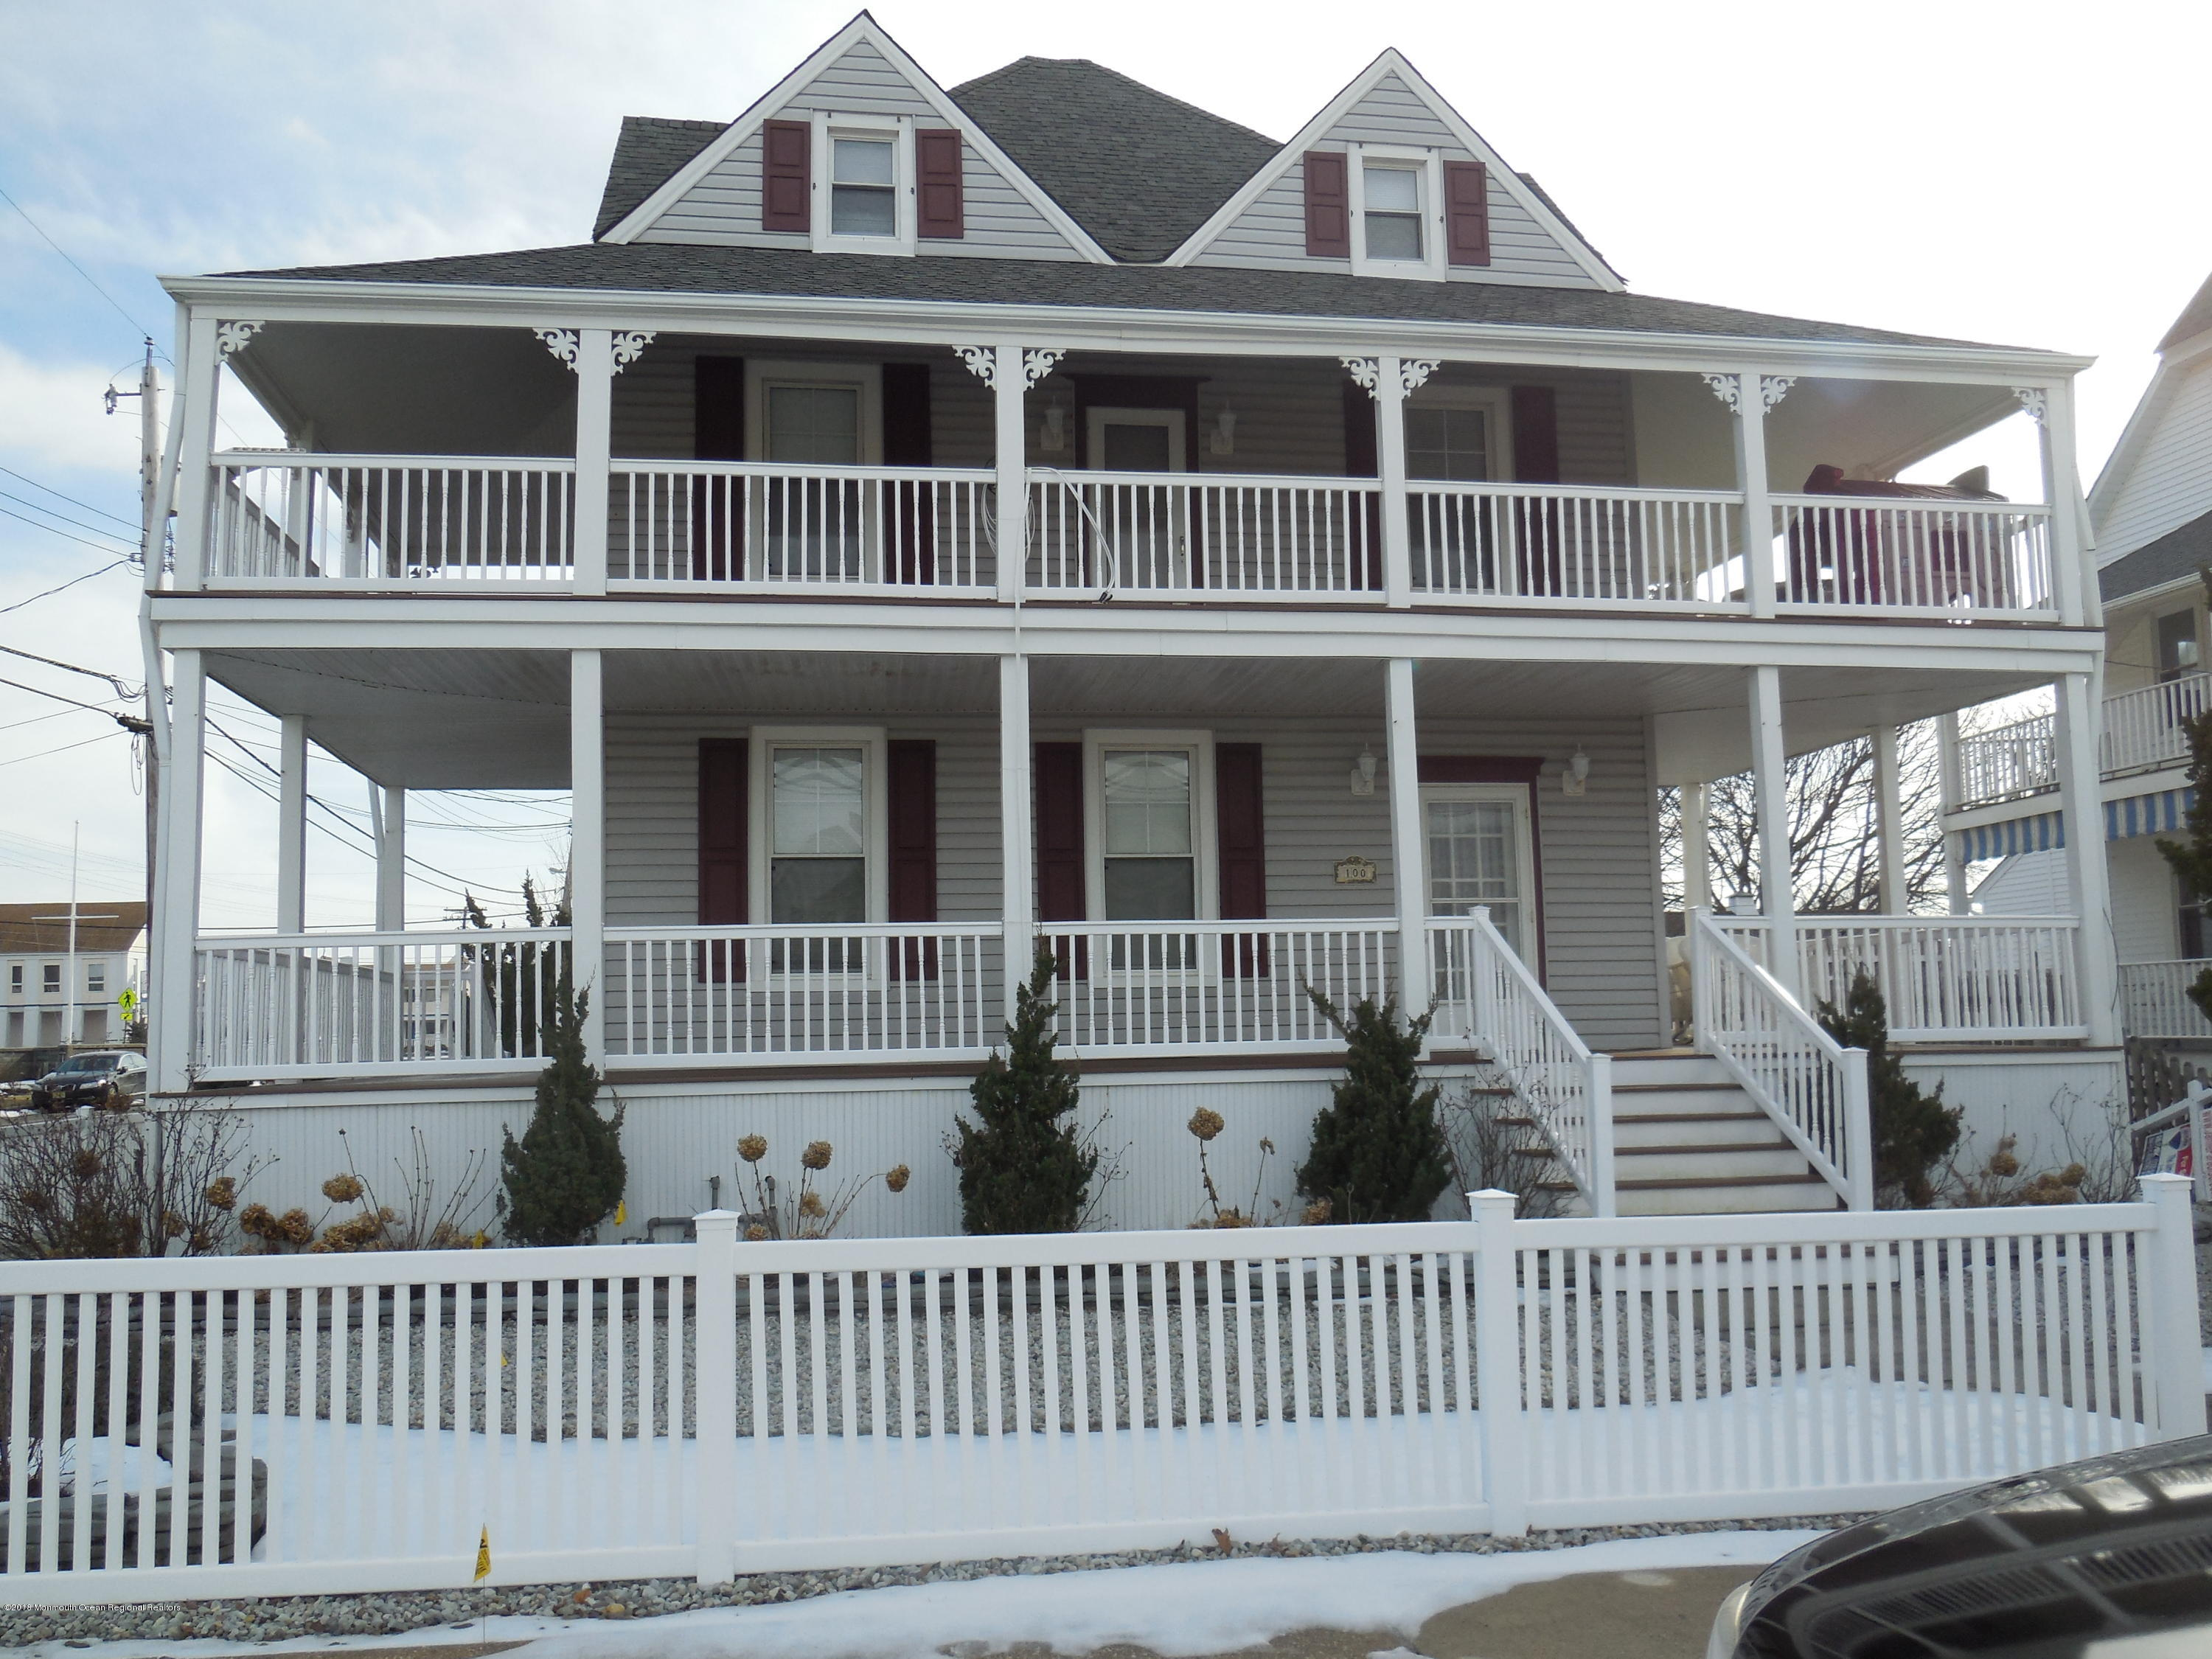 Enjoy the Summer, Fall, Winter & Spring in this magnificent Victorian  with 2 wrap around porches. This home is only 2 short blocks to the boardwalk & beach.  Soak in the ocean views and breezes from the open porches.  A total of 5 bedrooms, 4 have queen beds. The 5th bedroom has twin beds.  There is a full size futon in the third floor living room.  In all the home sleeps 12. There are living rooms on each of the 3 levels. There are full bathrooms on all levels. A tub/shower on level 1 and stall showers on level 2 & 3. The first floor and second floor have fully equip kitchens with dining areas plus washers & dryers which makes it perfect for extended families & friends. Rental prices vary seasonally. Short term rentals are preferred. Listing price is the 2019's Summer rate per week.